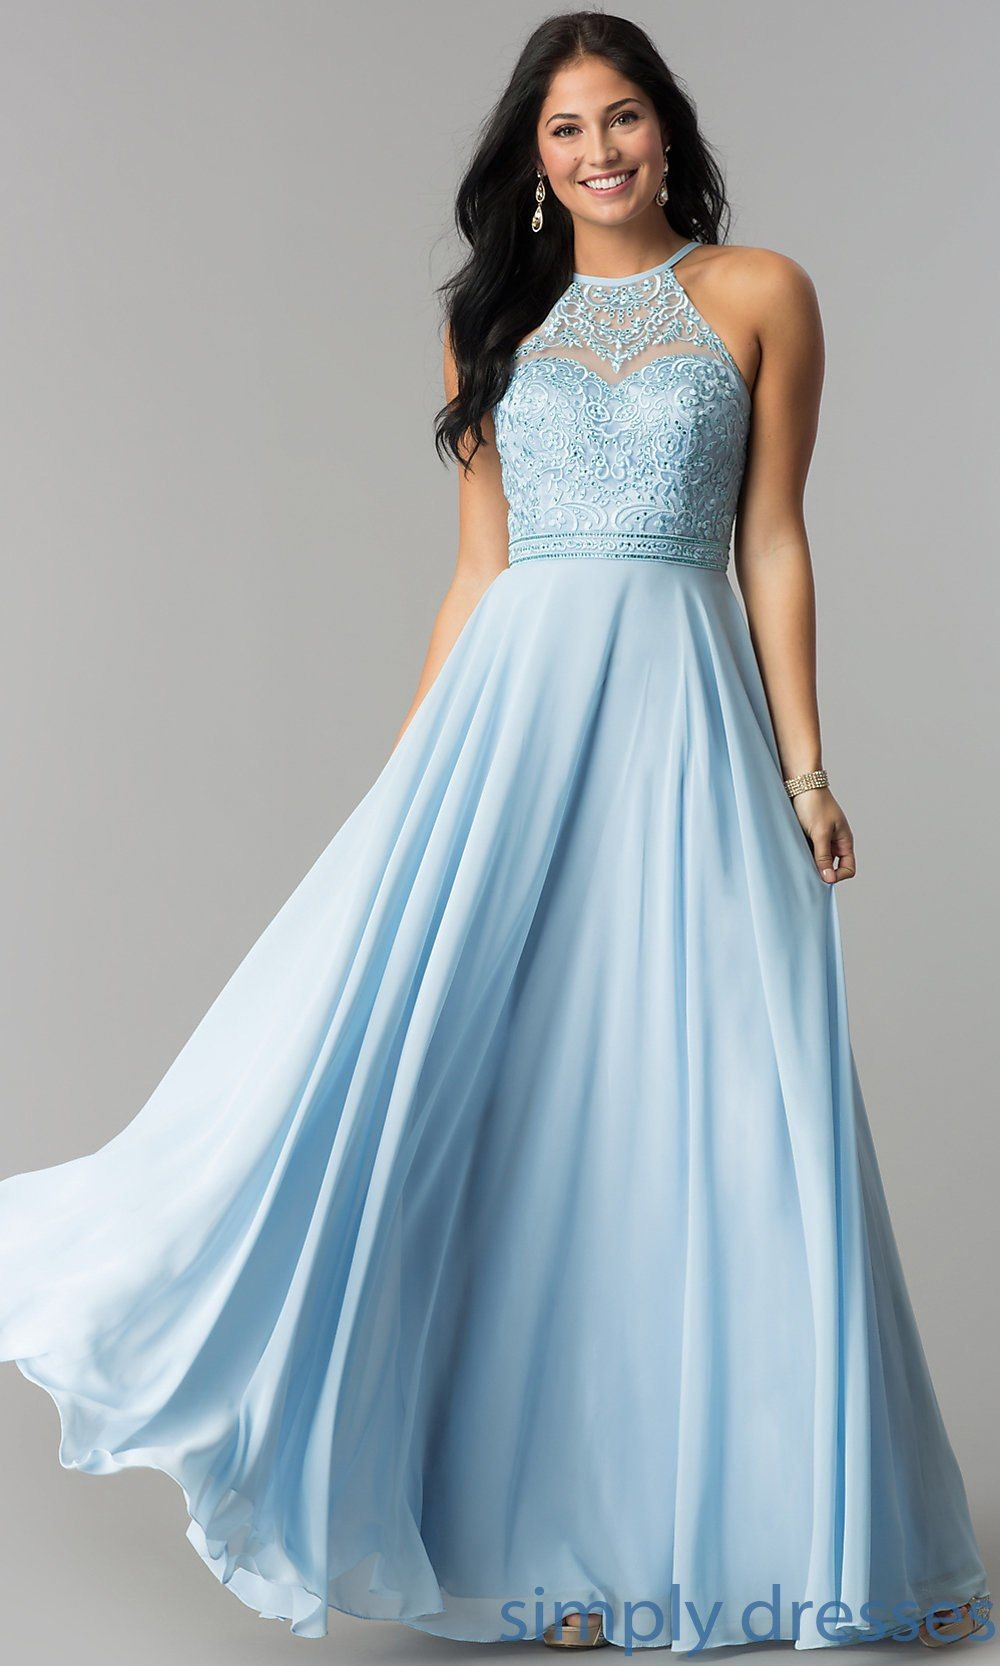 0397a9c9f15 Embroidered-Bodice Long Formal Chiffon Prom Dress